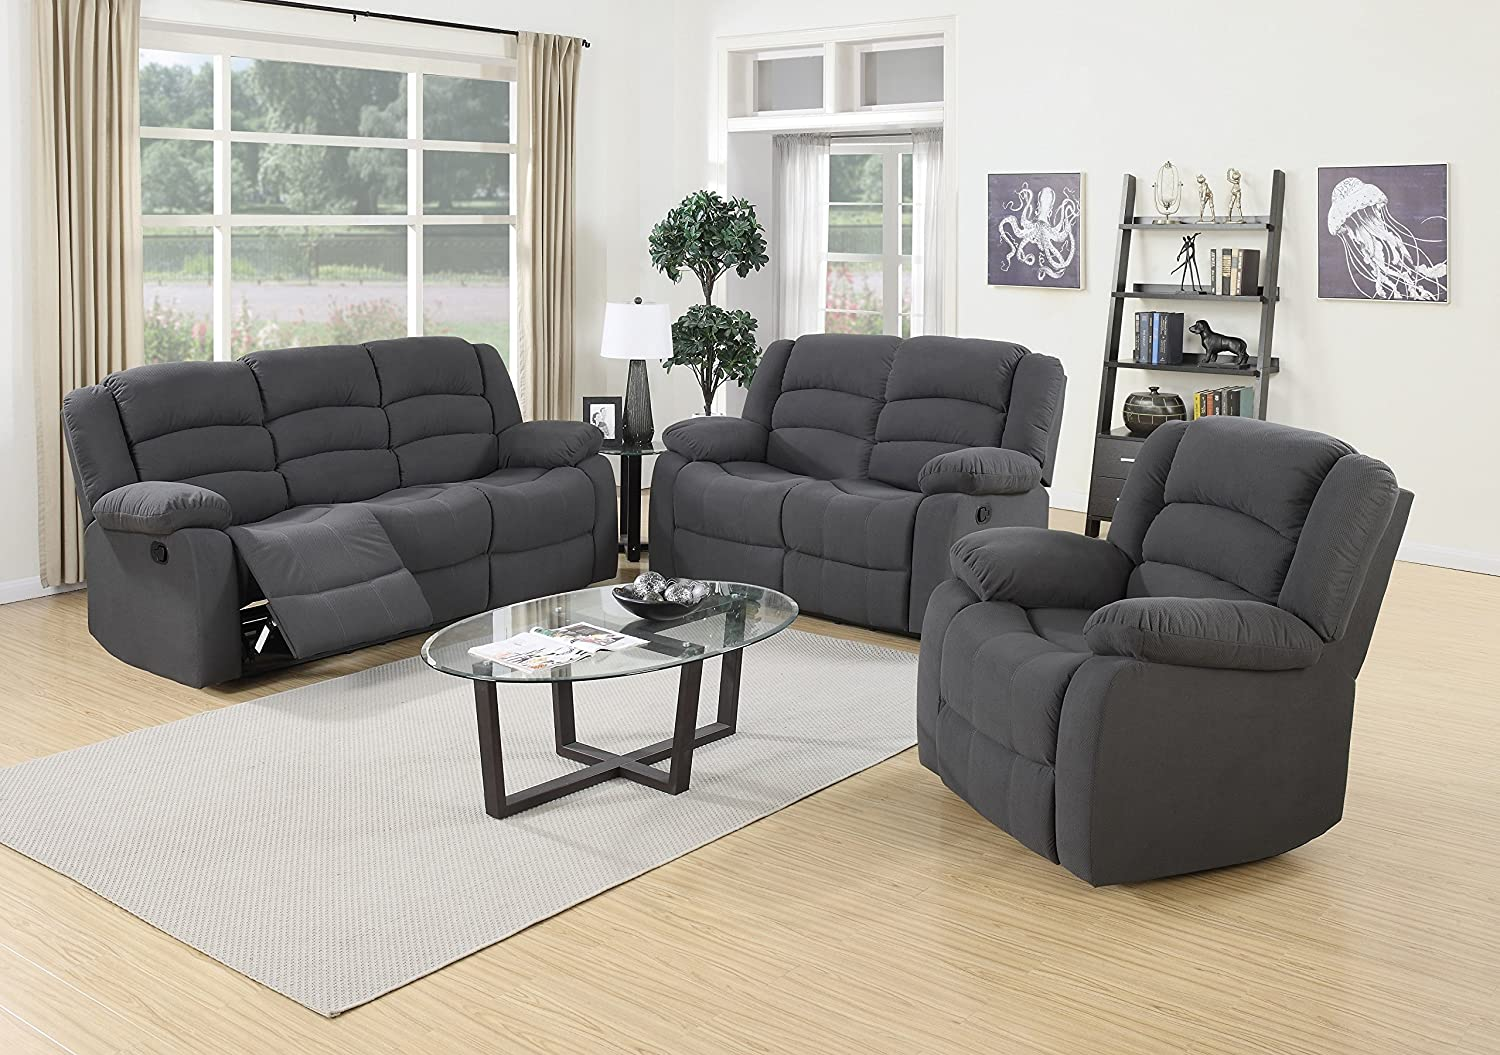 Amazon com  US Pride Furniture 3 Piece Grey Fabric Reclining Sofa  Loveseat    Chair Set  Kitchen   Dining. Amazon com  US Pride Furniture 3 Piece Grey Fabric Reclining Sofa